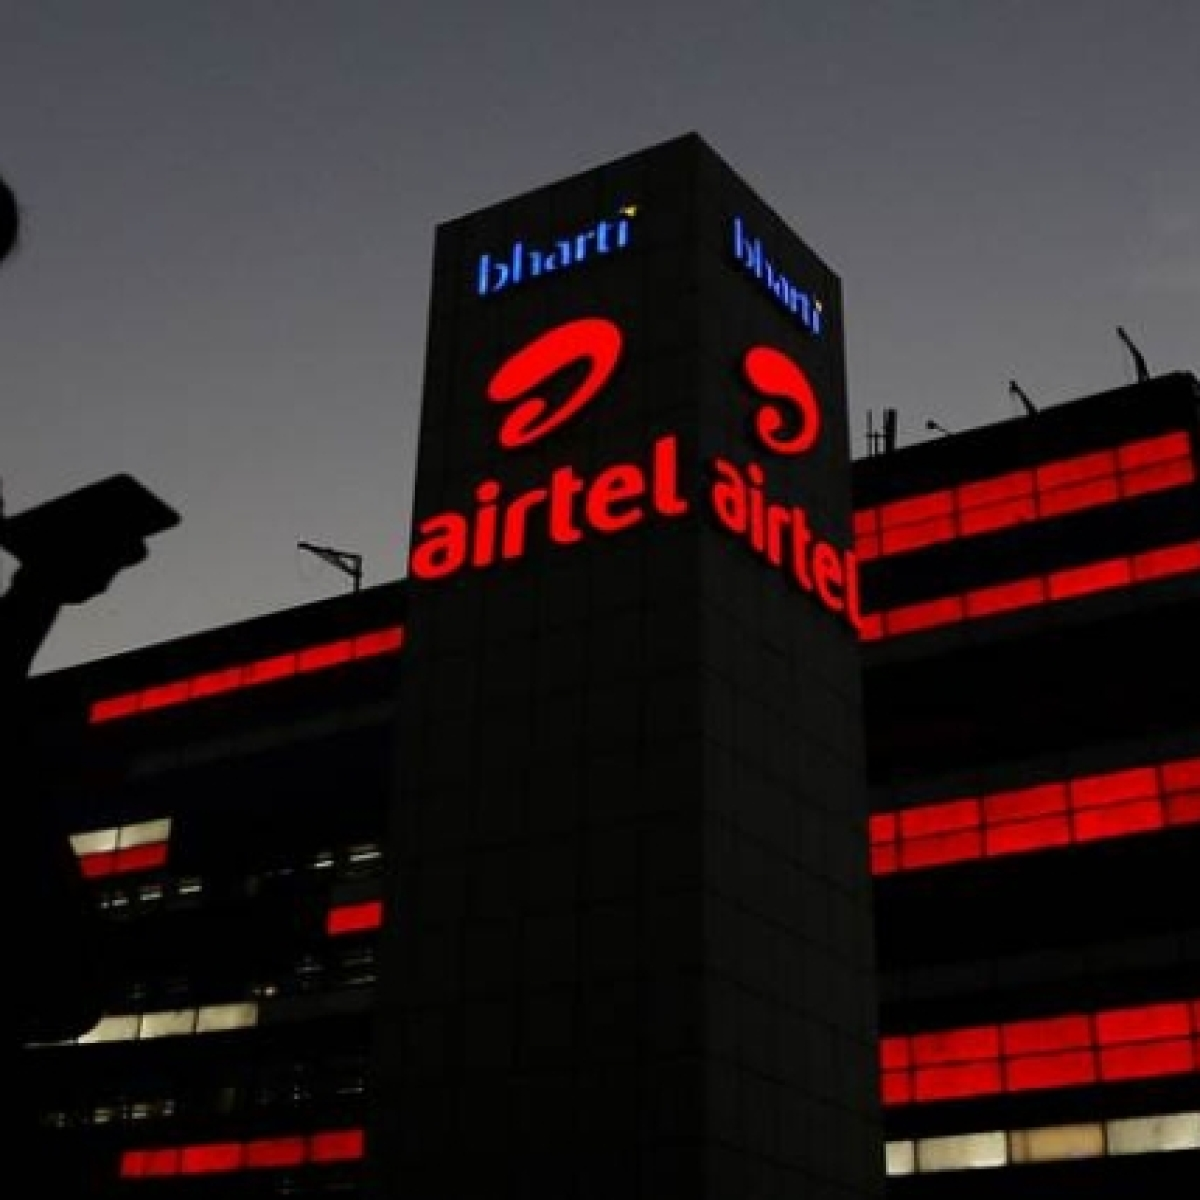 Bharti Airtel pays Rs 10,000 cr as a part of its AGR dues to telecom department